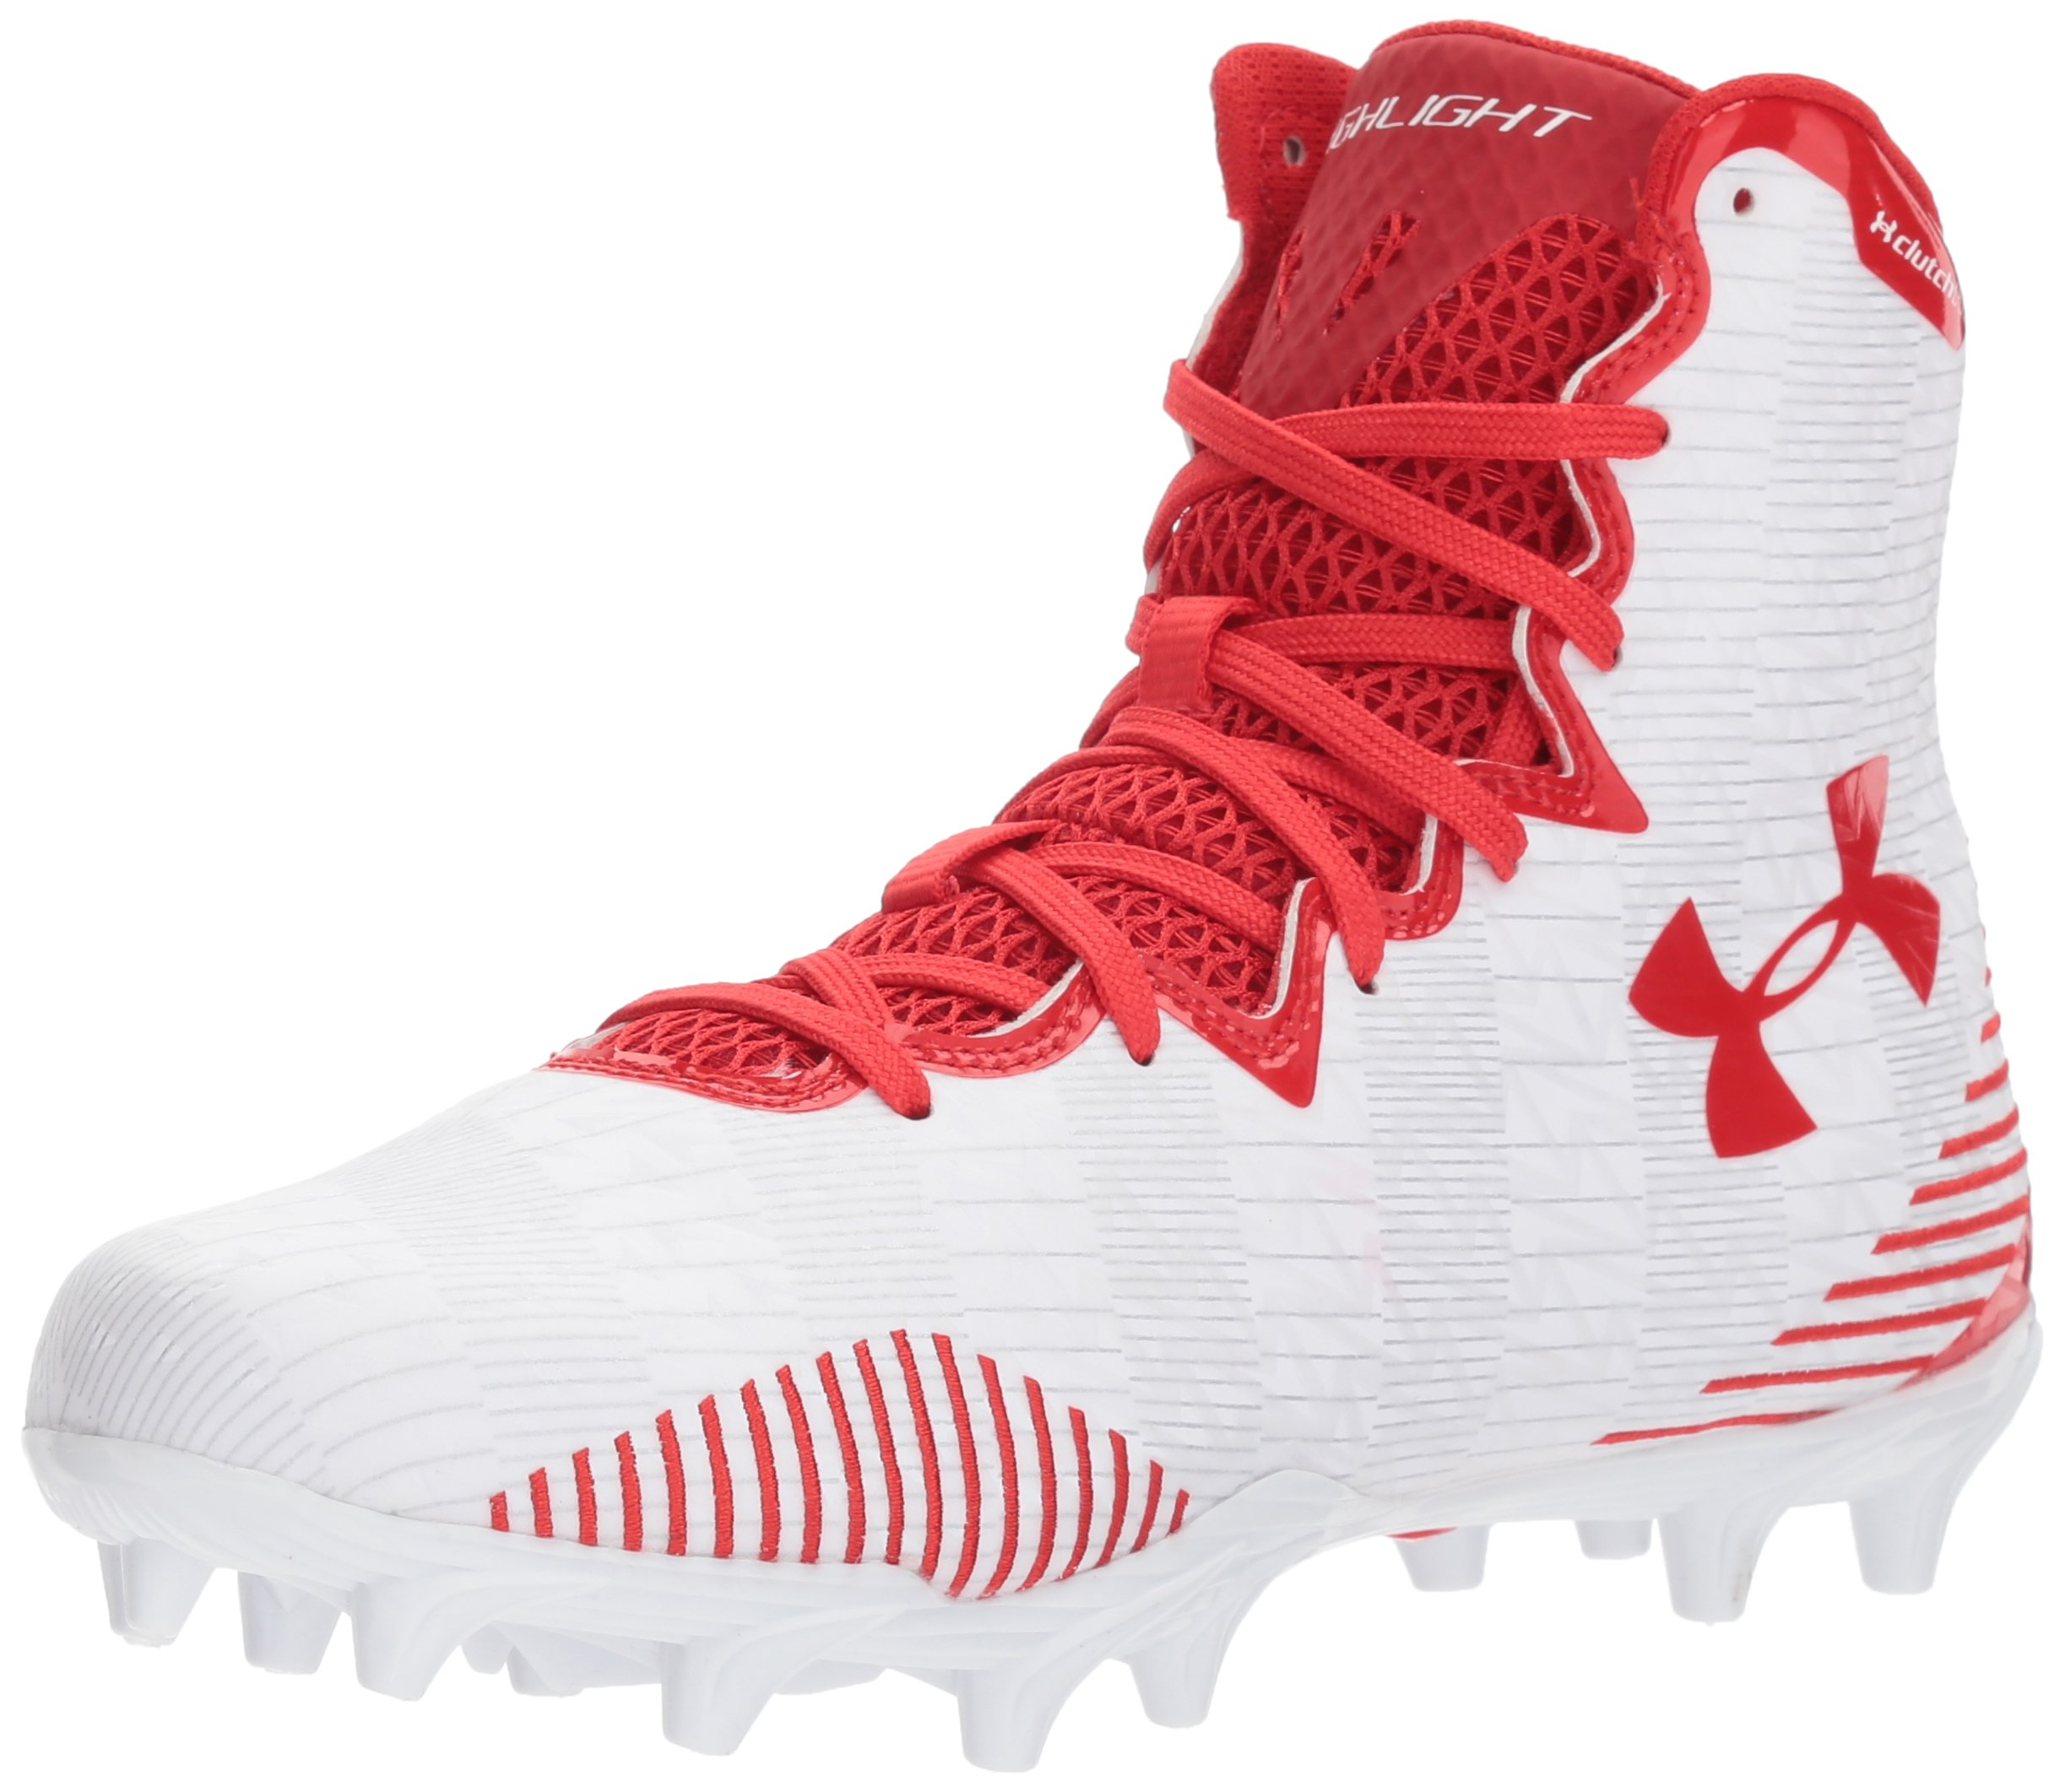 Under Armour Women's Lax Highlight MC Lacrosse Shoe, White (161)/Red, 5.5